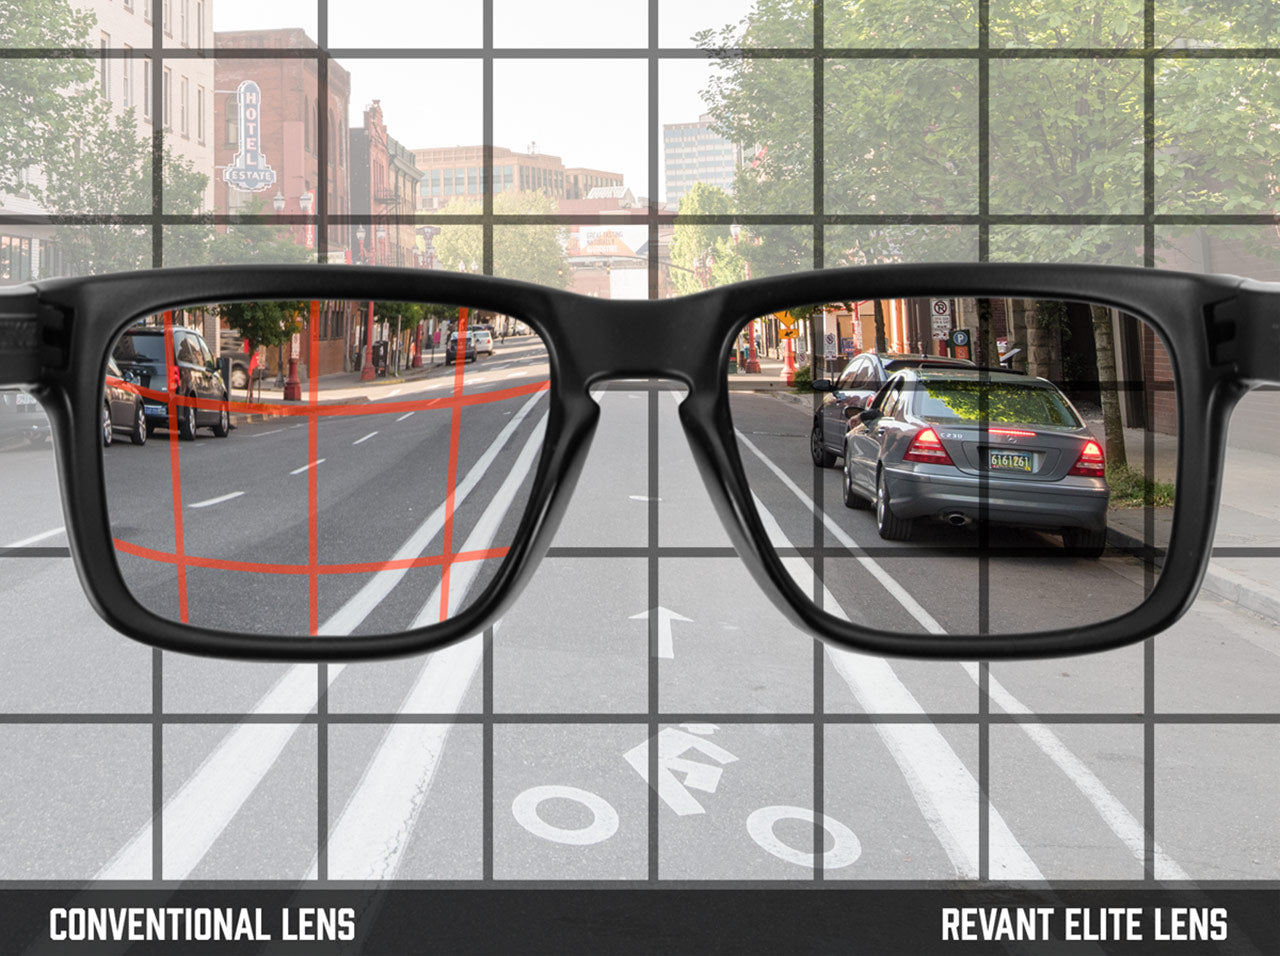 conventional lens vs revant elite lens